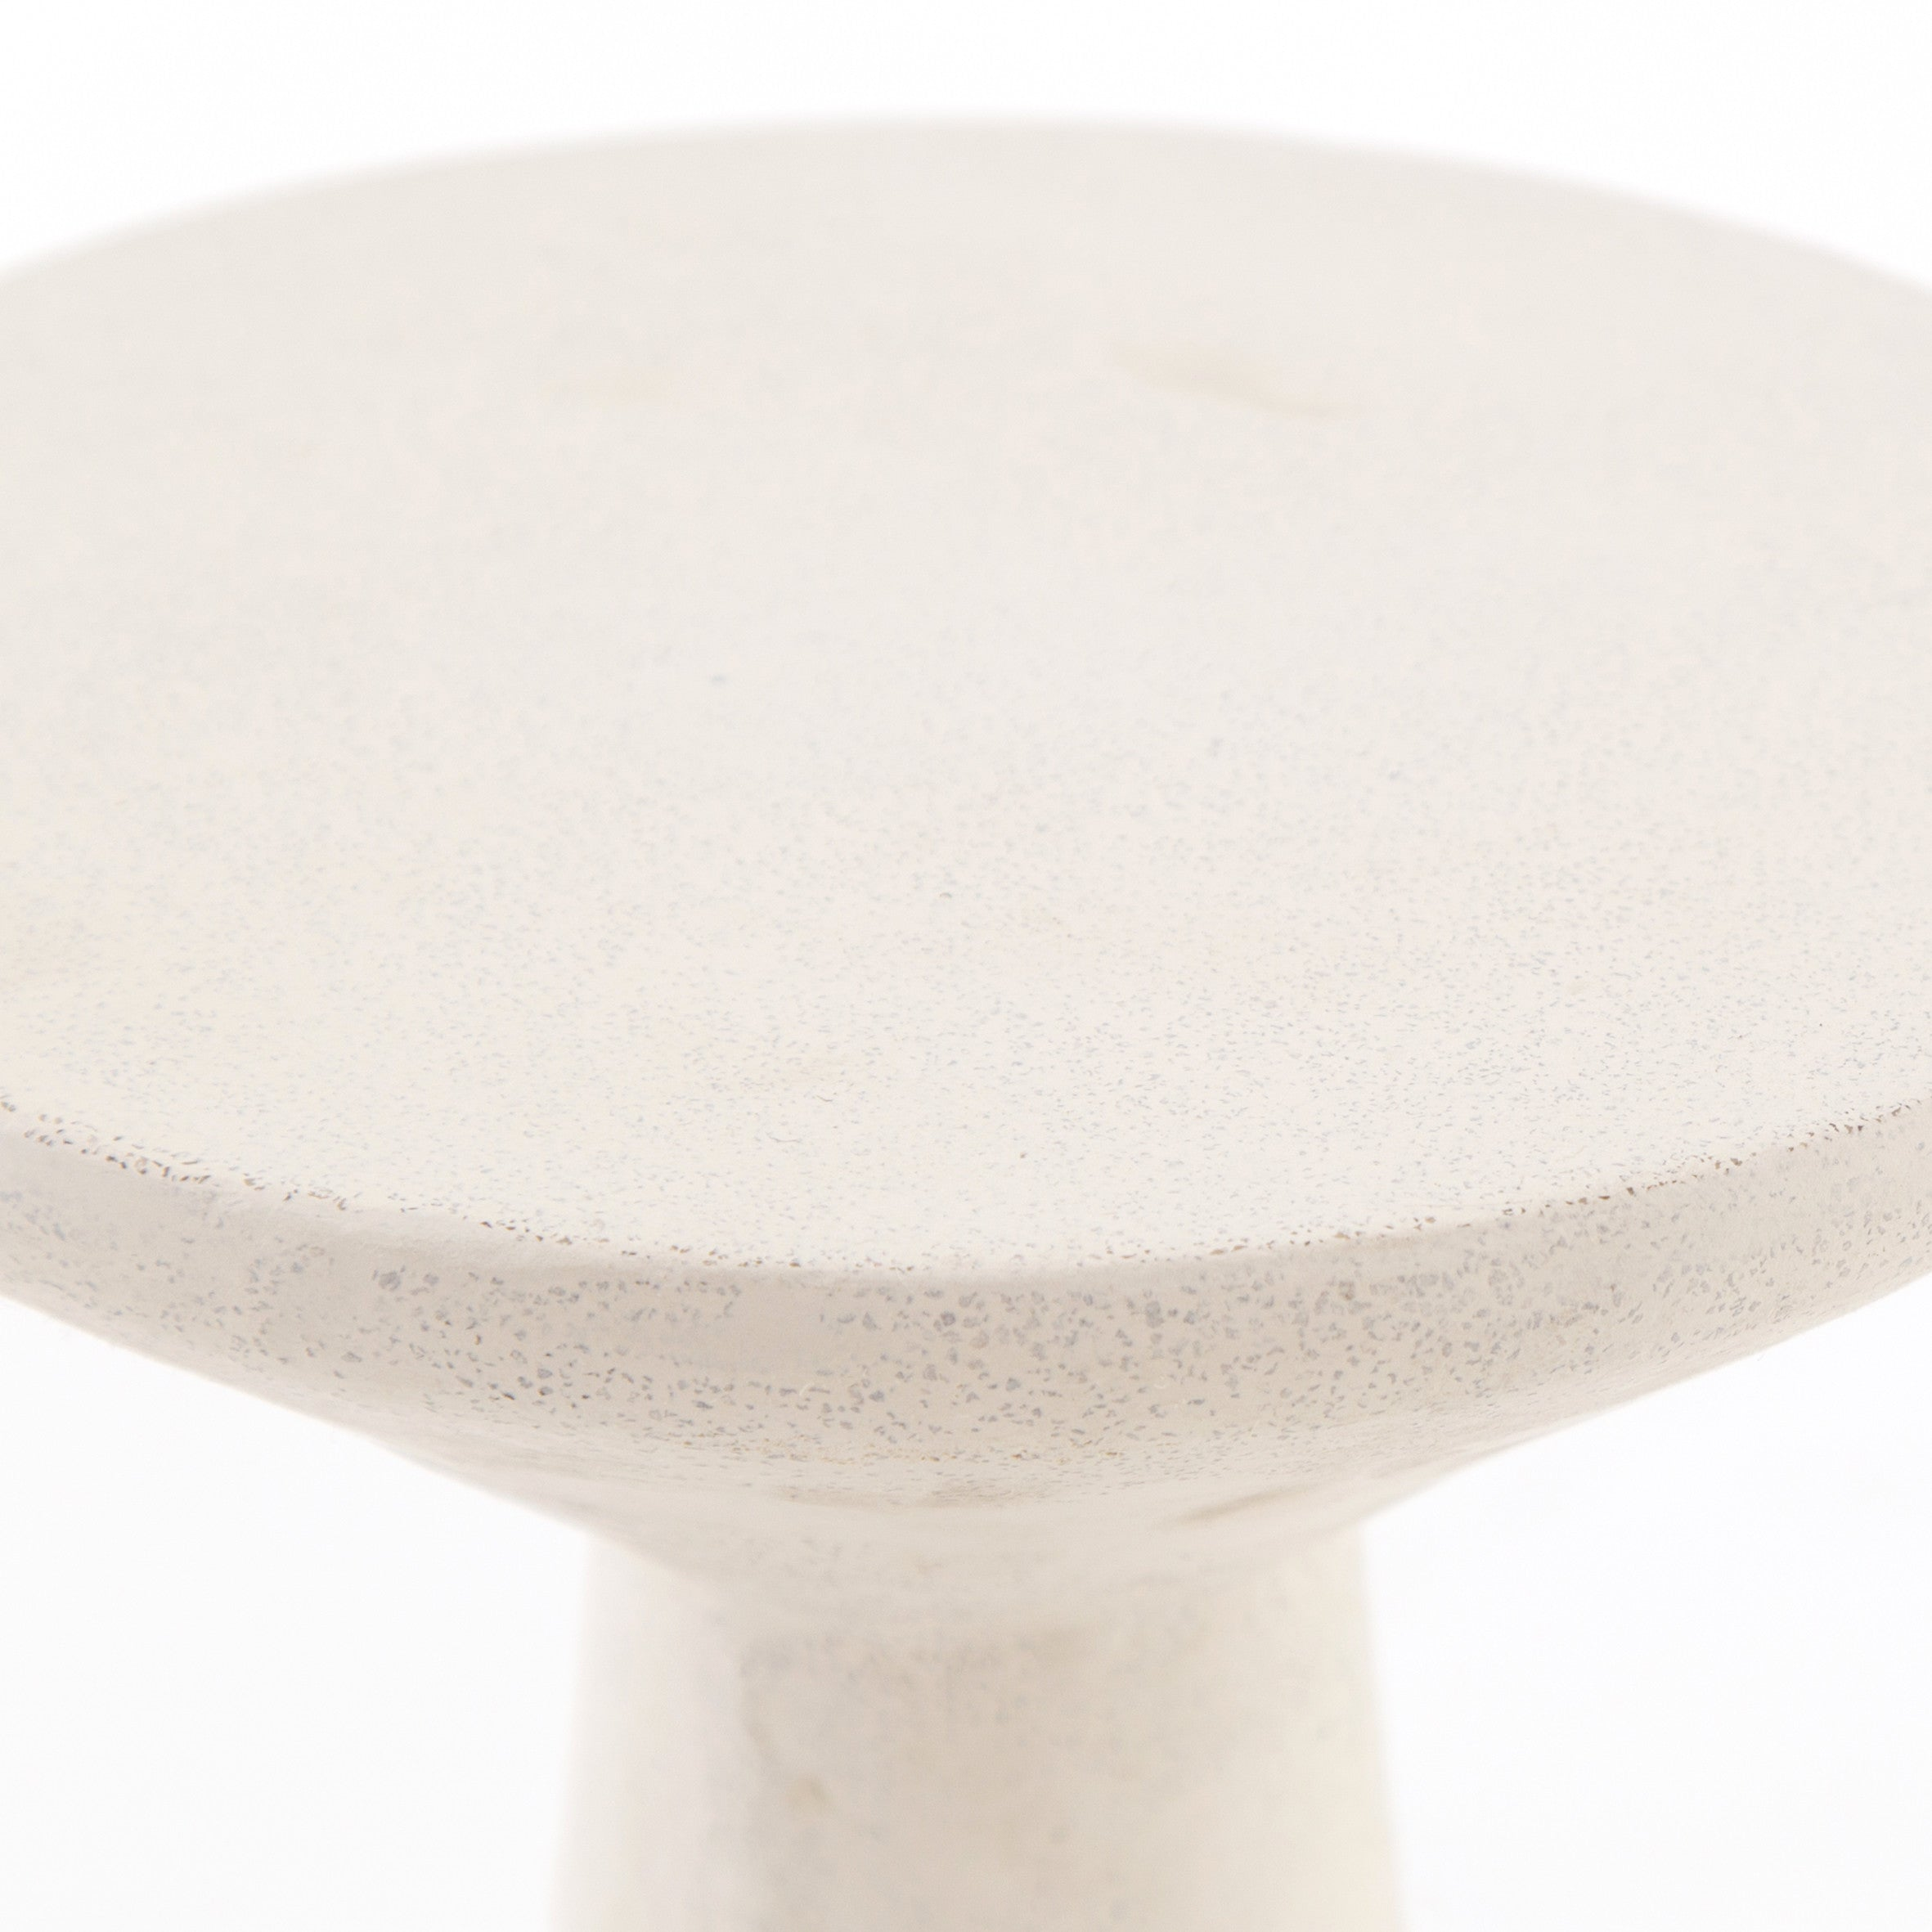 Yves Concrete Tables S/2